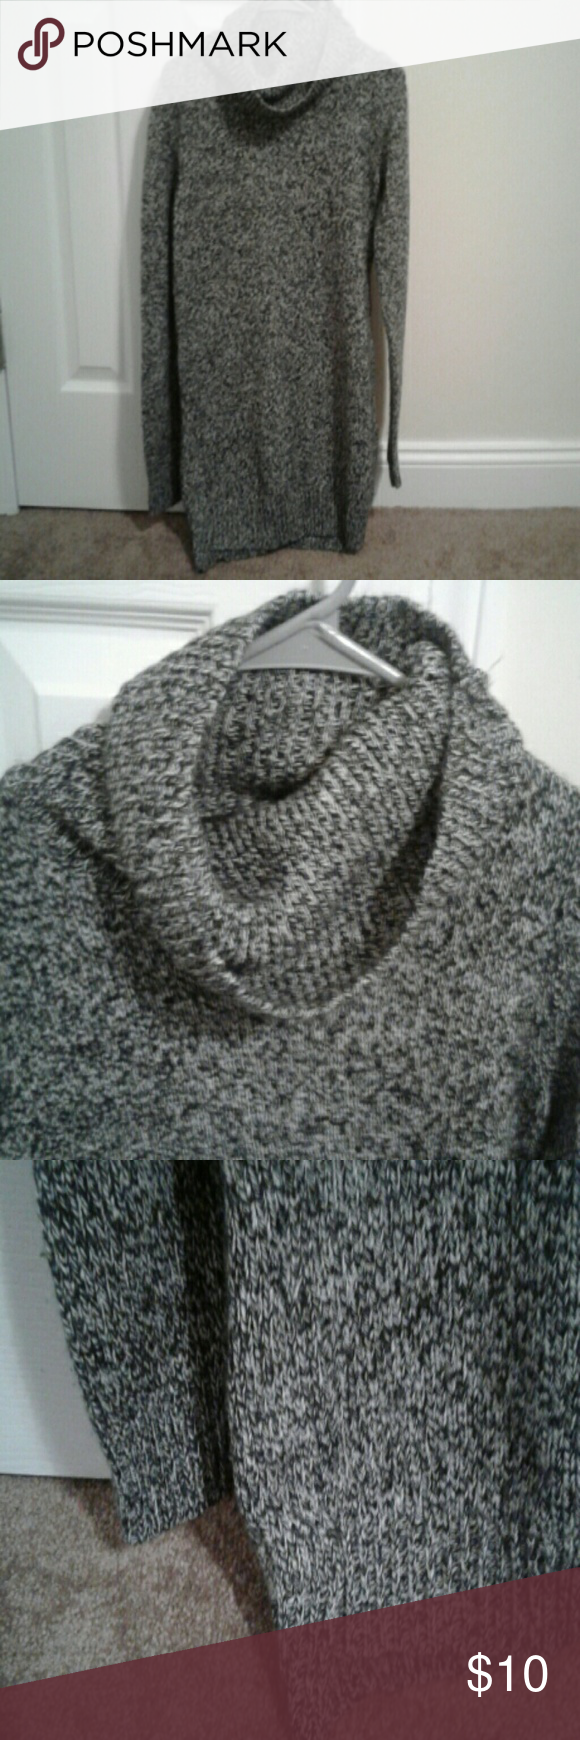 F21 Marbled Sweater Dress With Images Sweaters Sweater Dress Long Sweaters